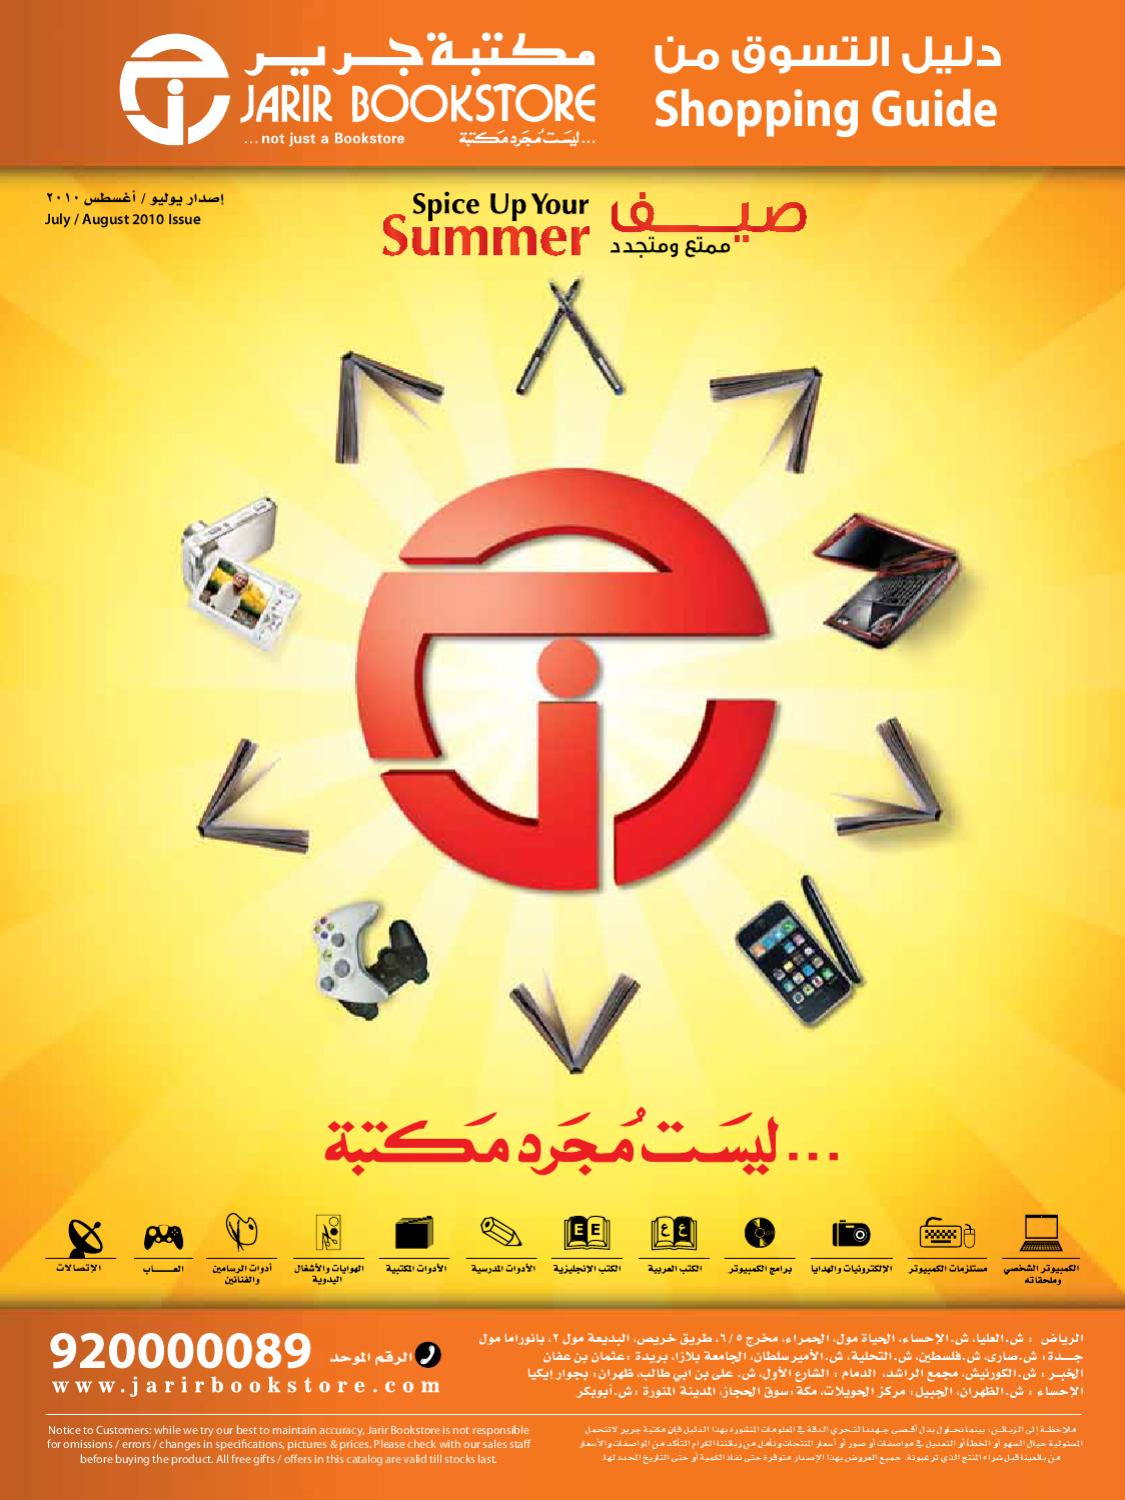 de24f68bbbb60 Jarir Bookstore Special Guide July 2010 by Ayman Qary - issuu